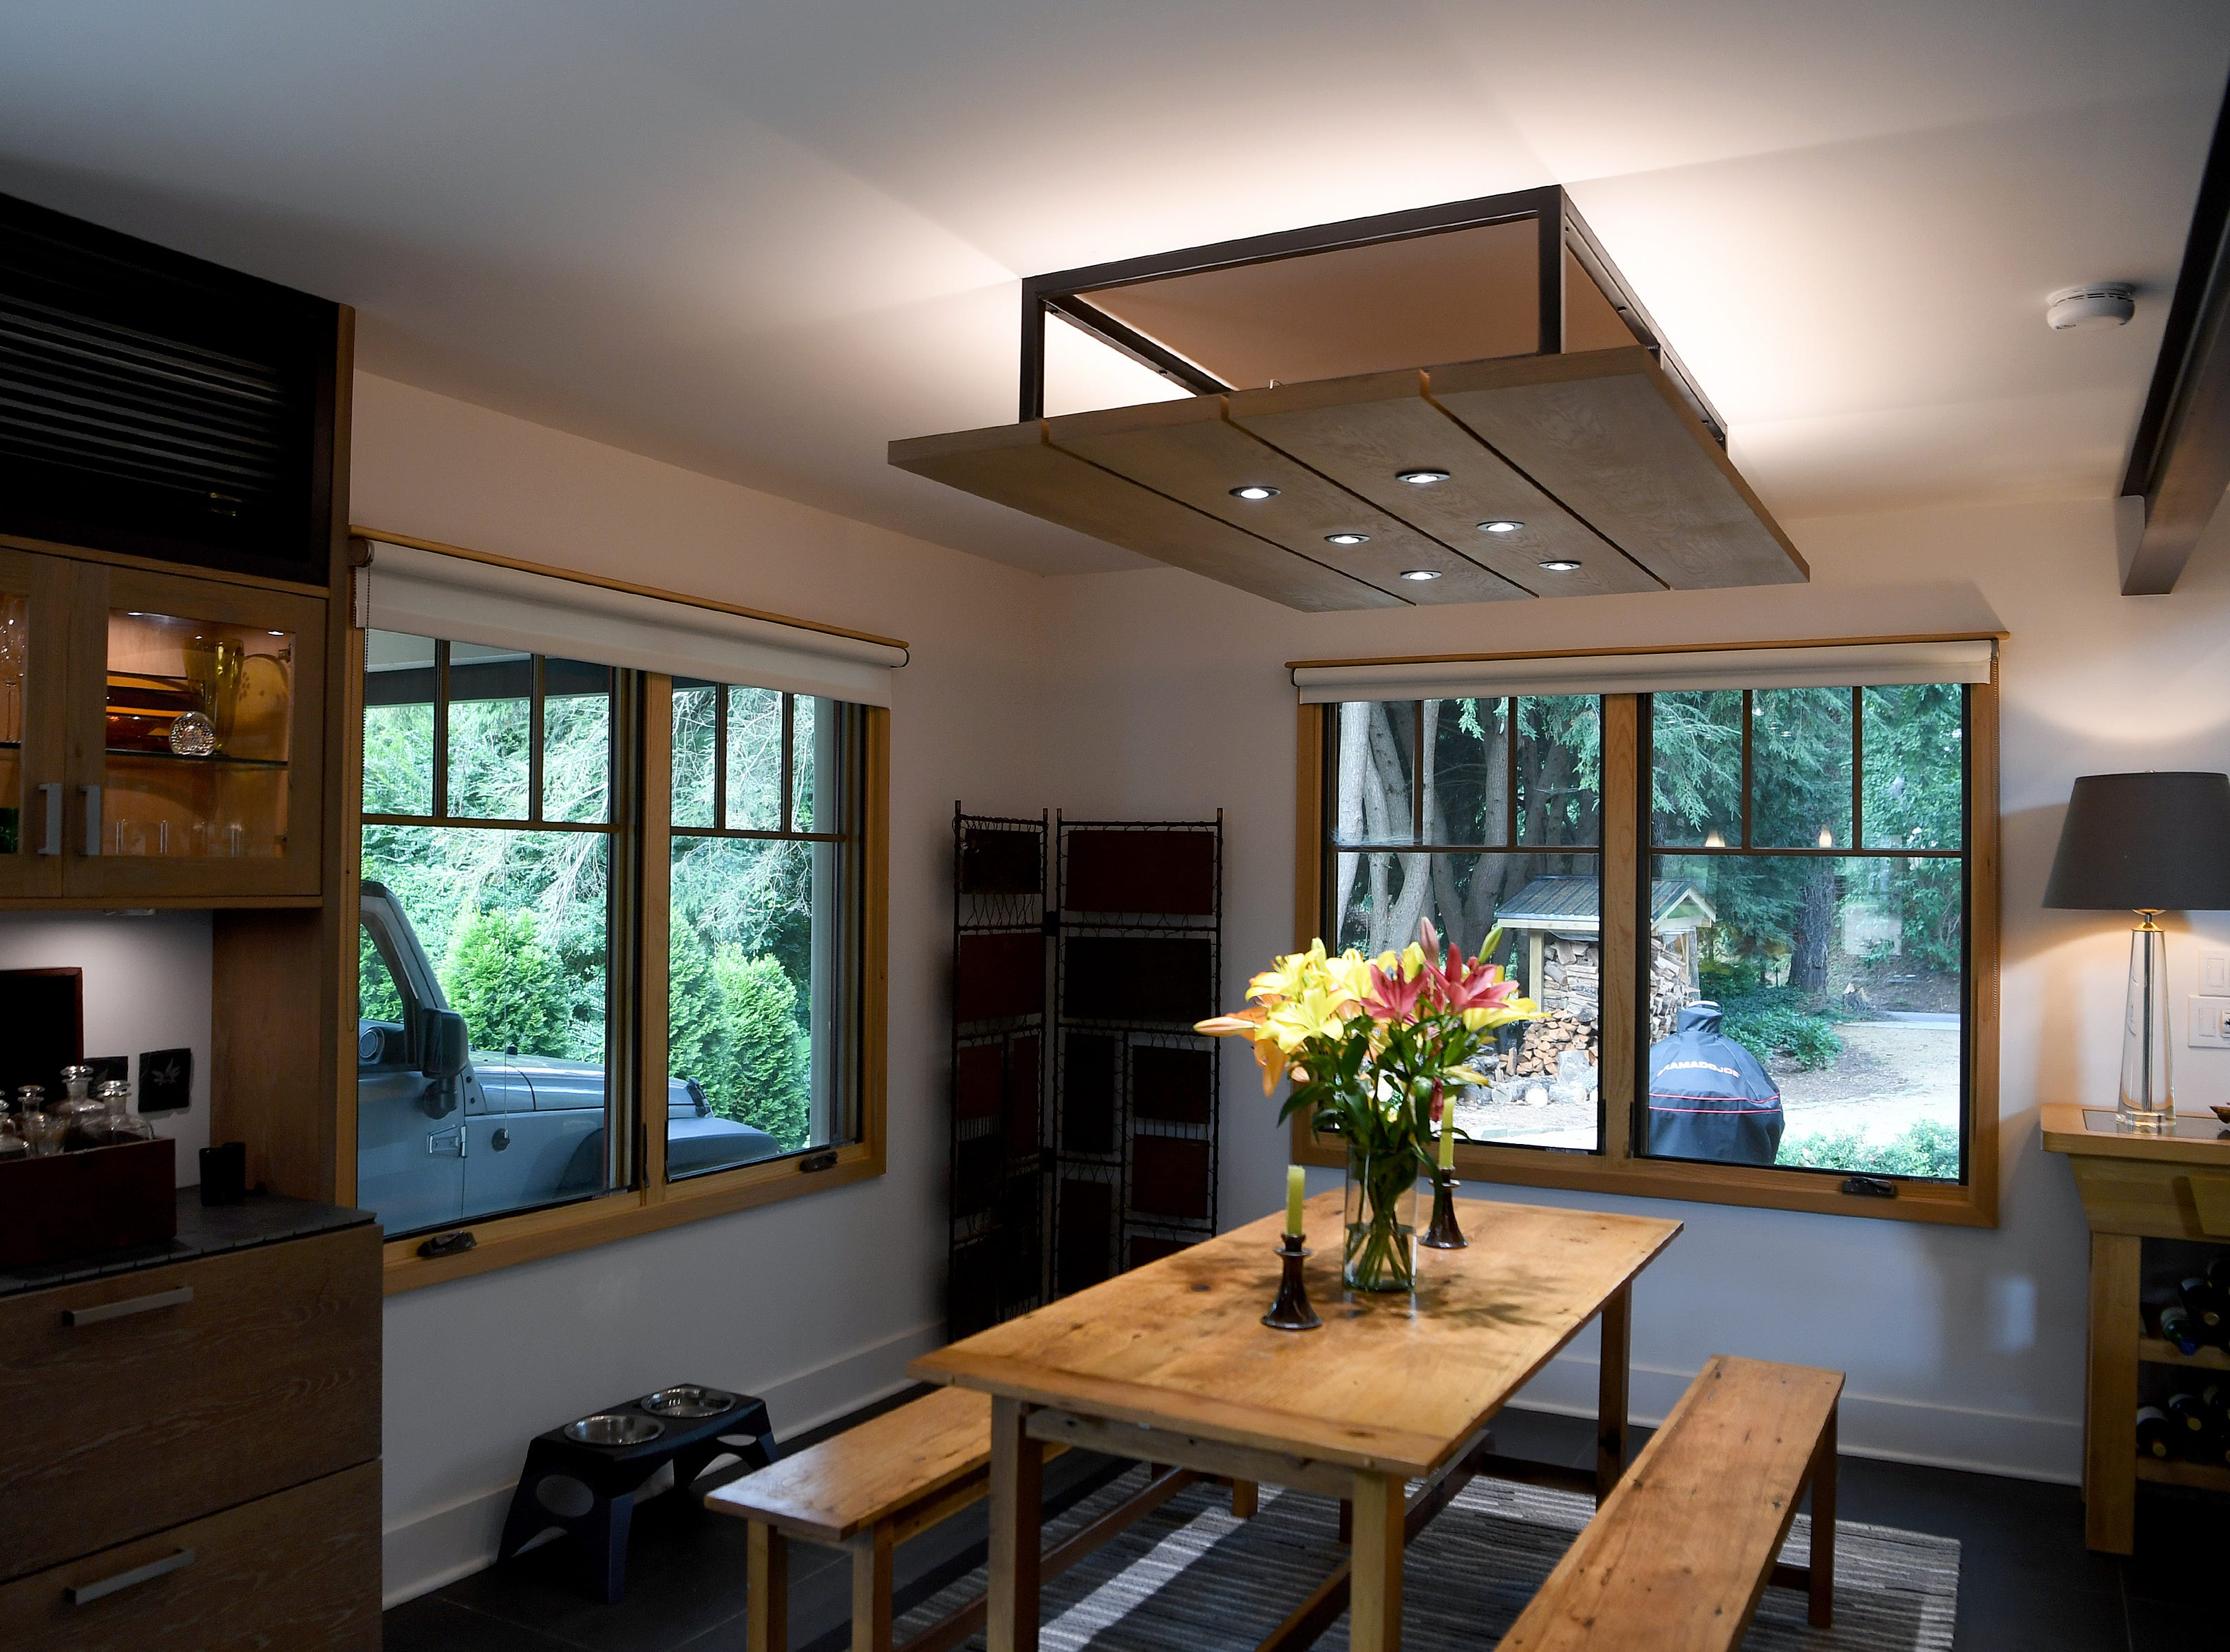 Mary Ann Myers and Annie Lundahl's North Asheville home features both down and up lighting giving the smaller space an open and modern feeling.